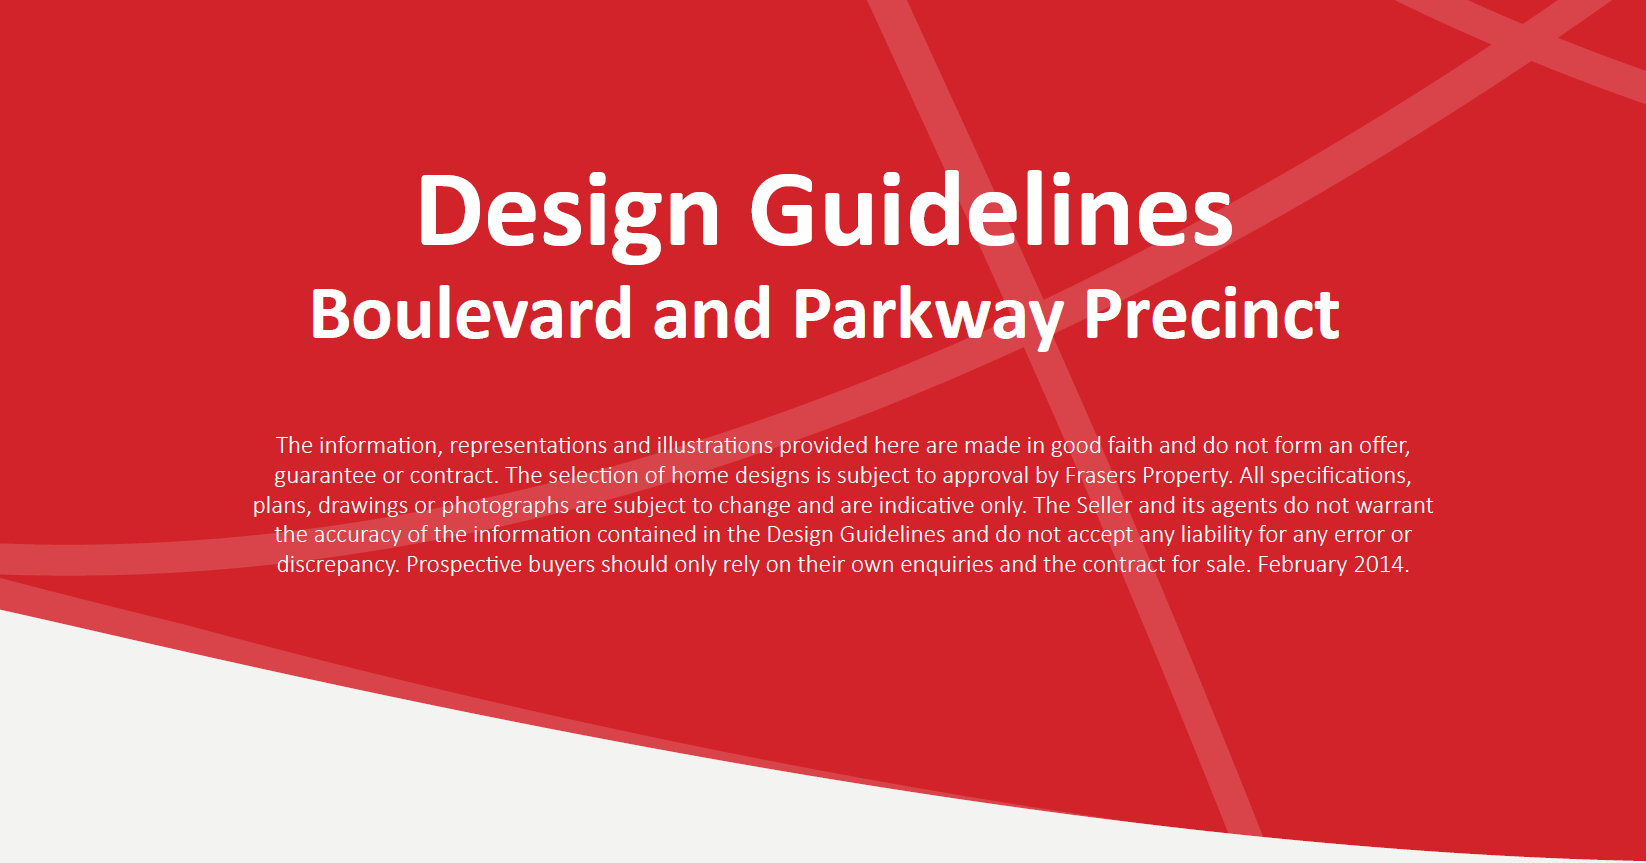 Design Guidelines Boulevard and Parkway